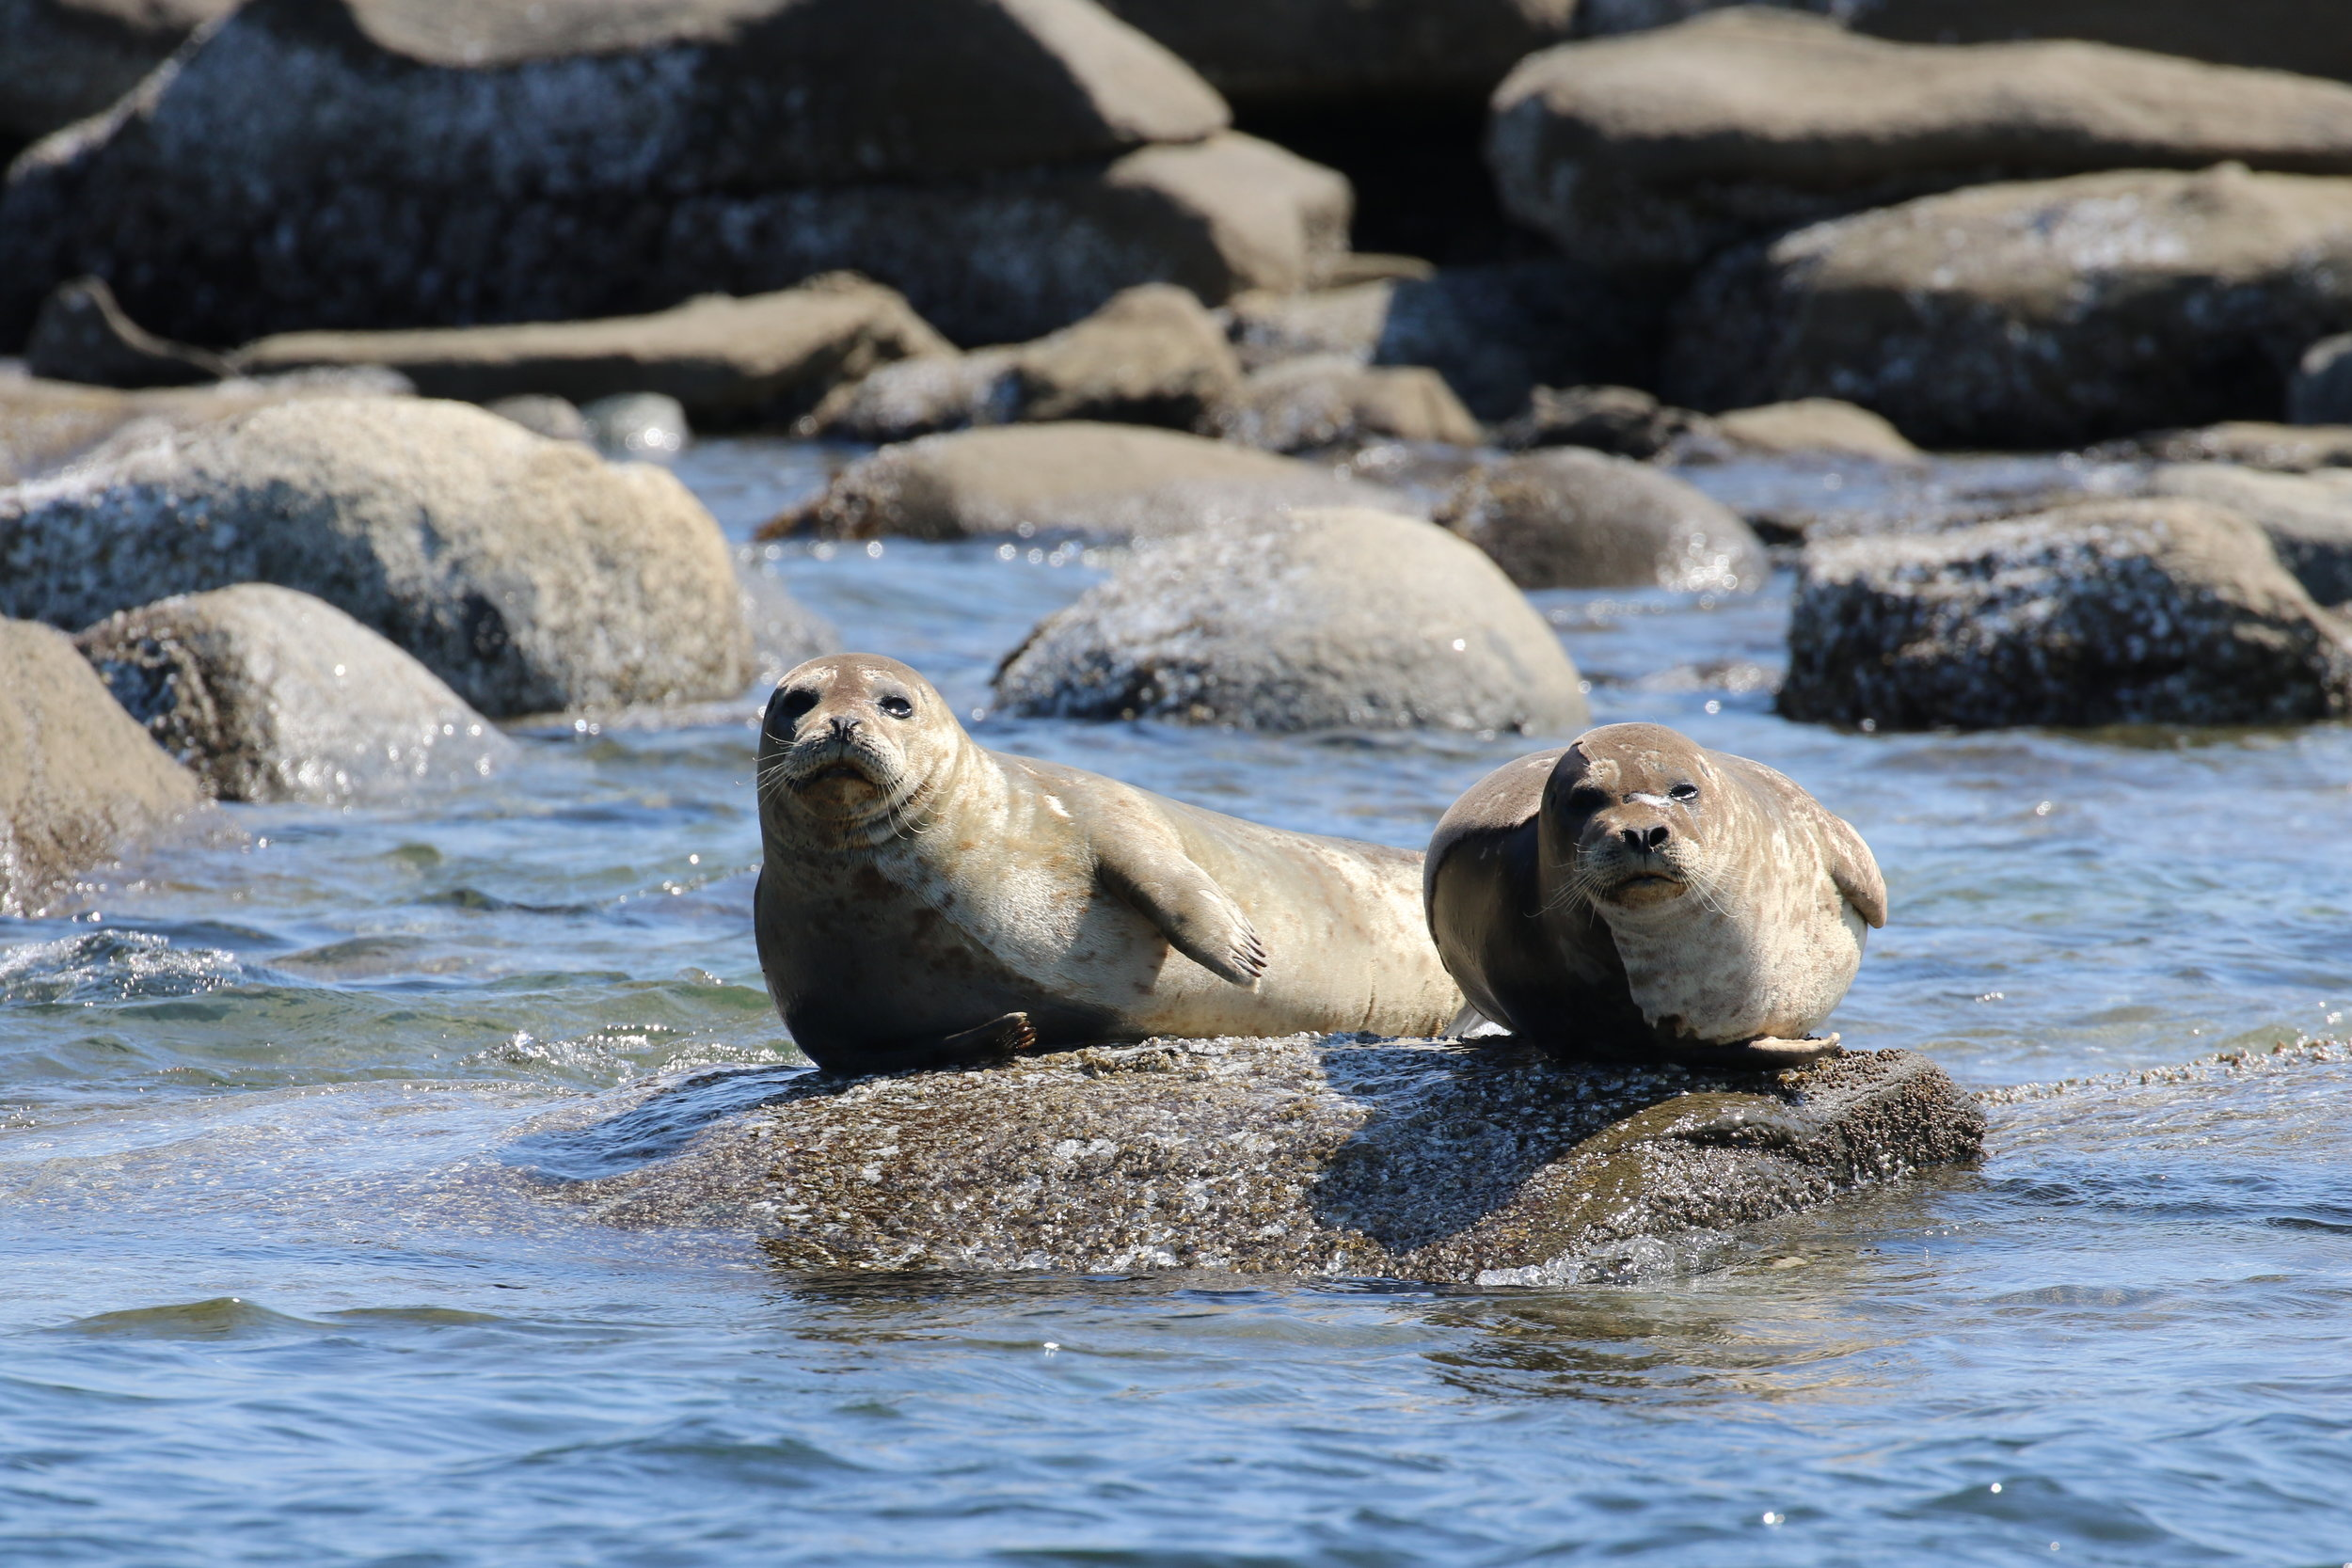 Harbour seals at a haul out zone. Photo by Jilann Campbell (10:30).